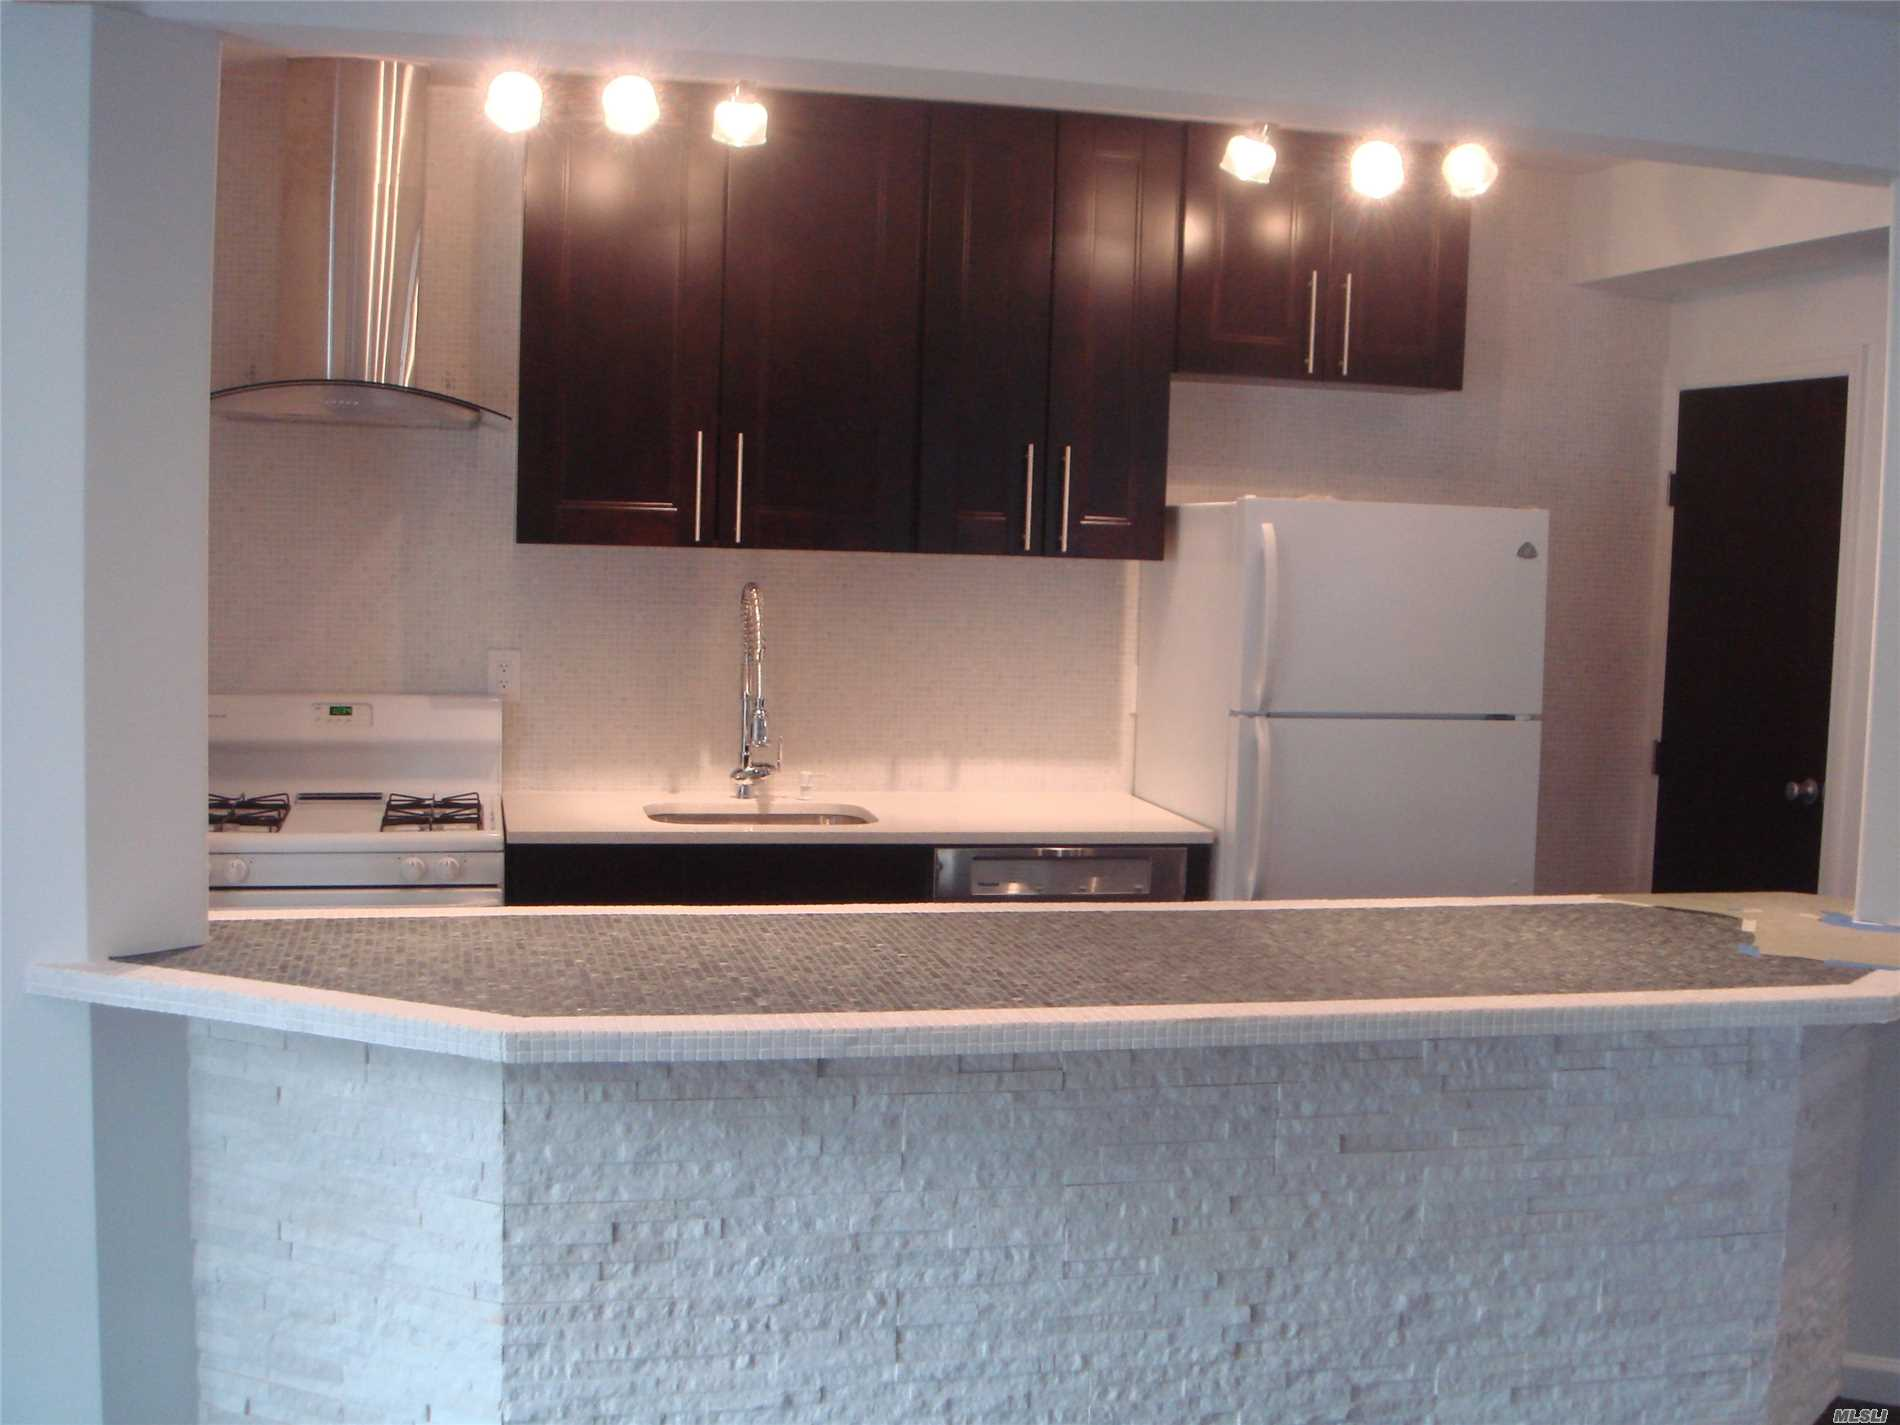 Rental Home, House Rental - Roslyn Heights, NY (photo 1)